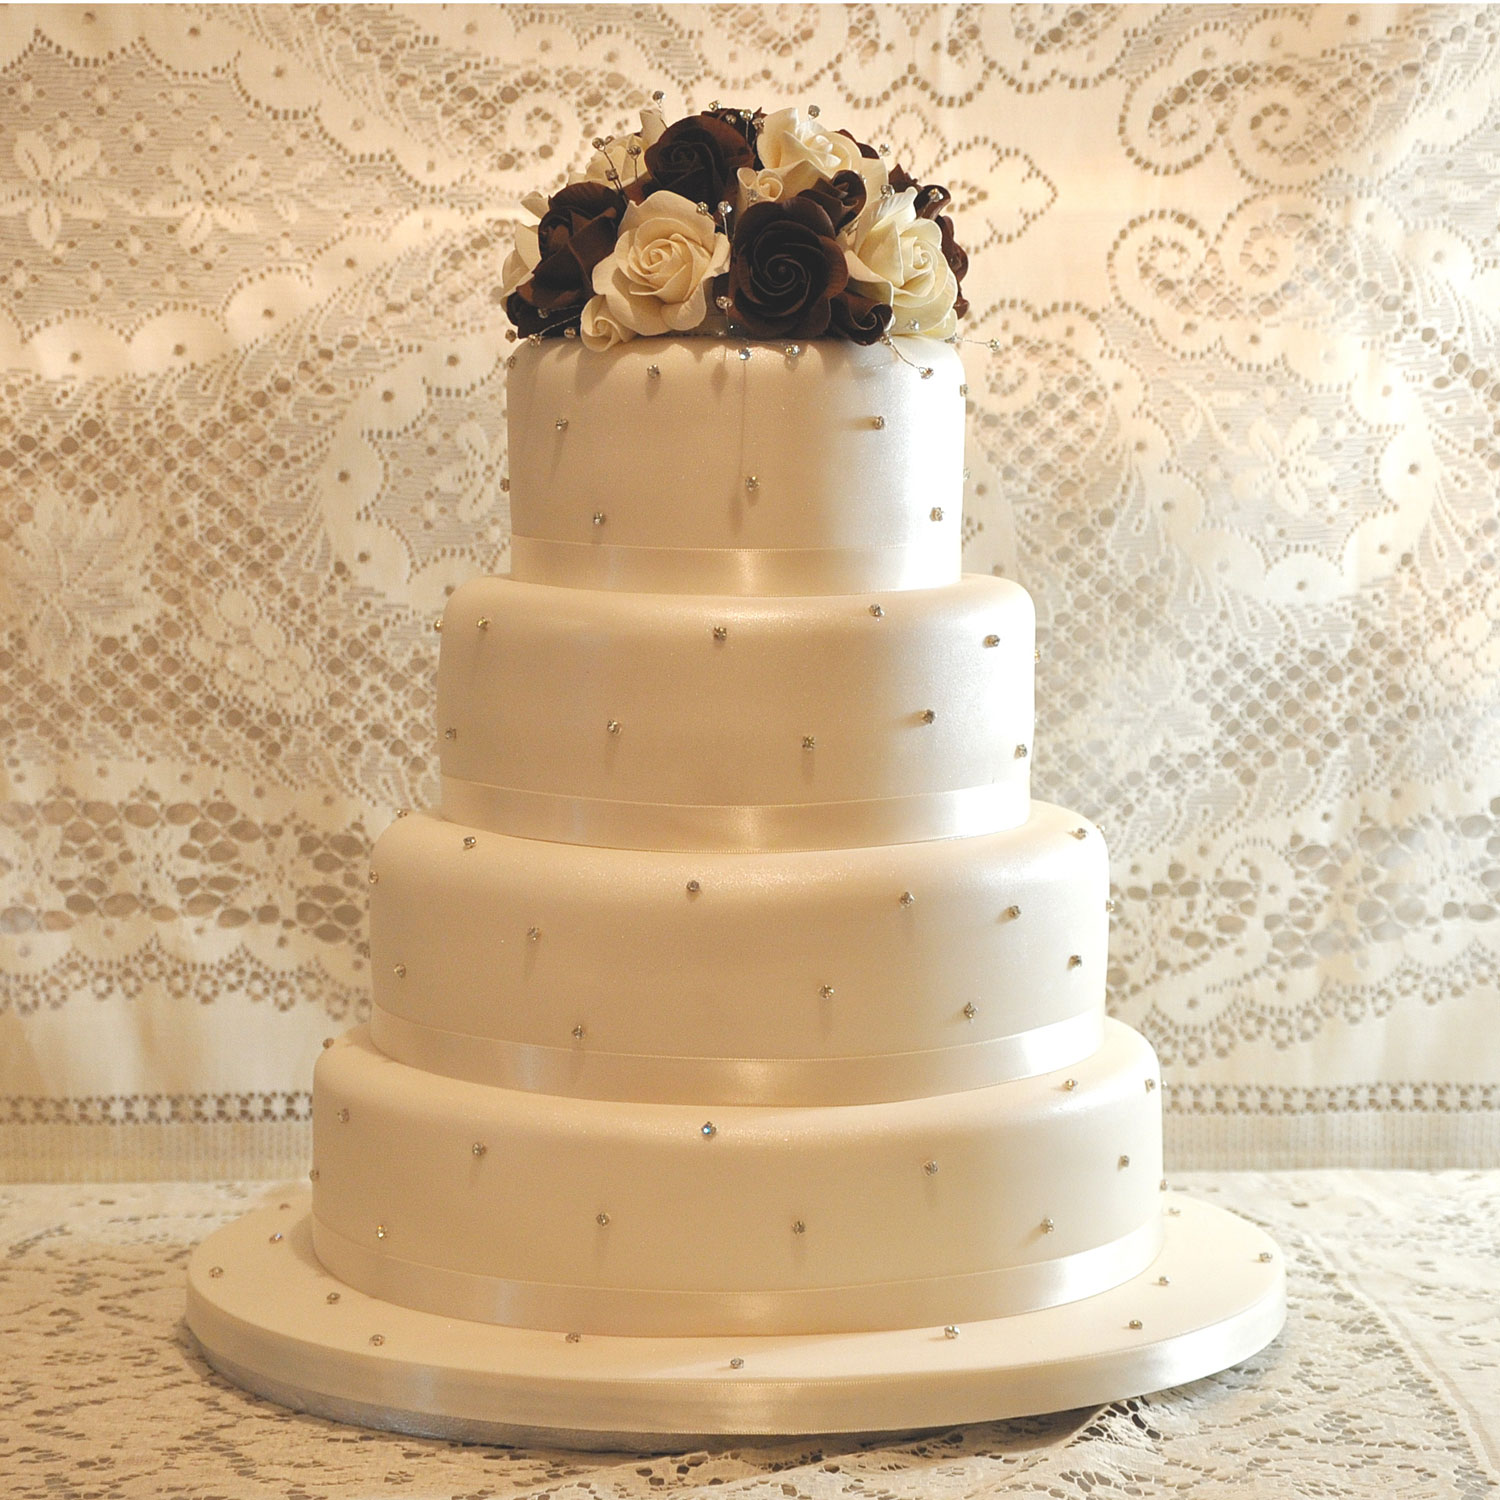 Wedding Cake with Daimante Studs